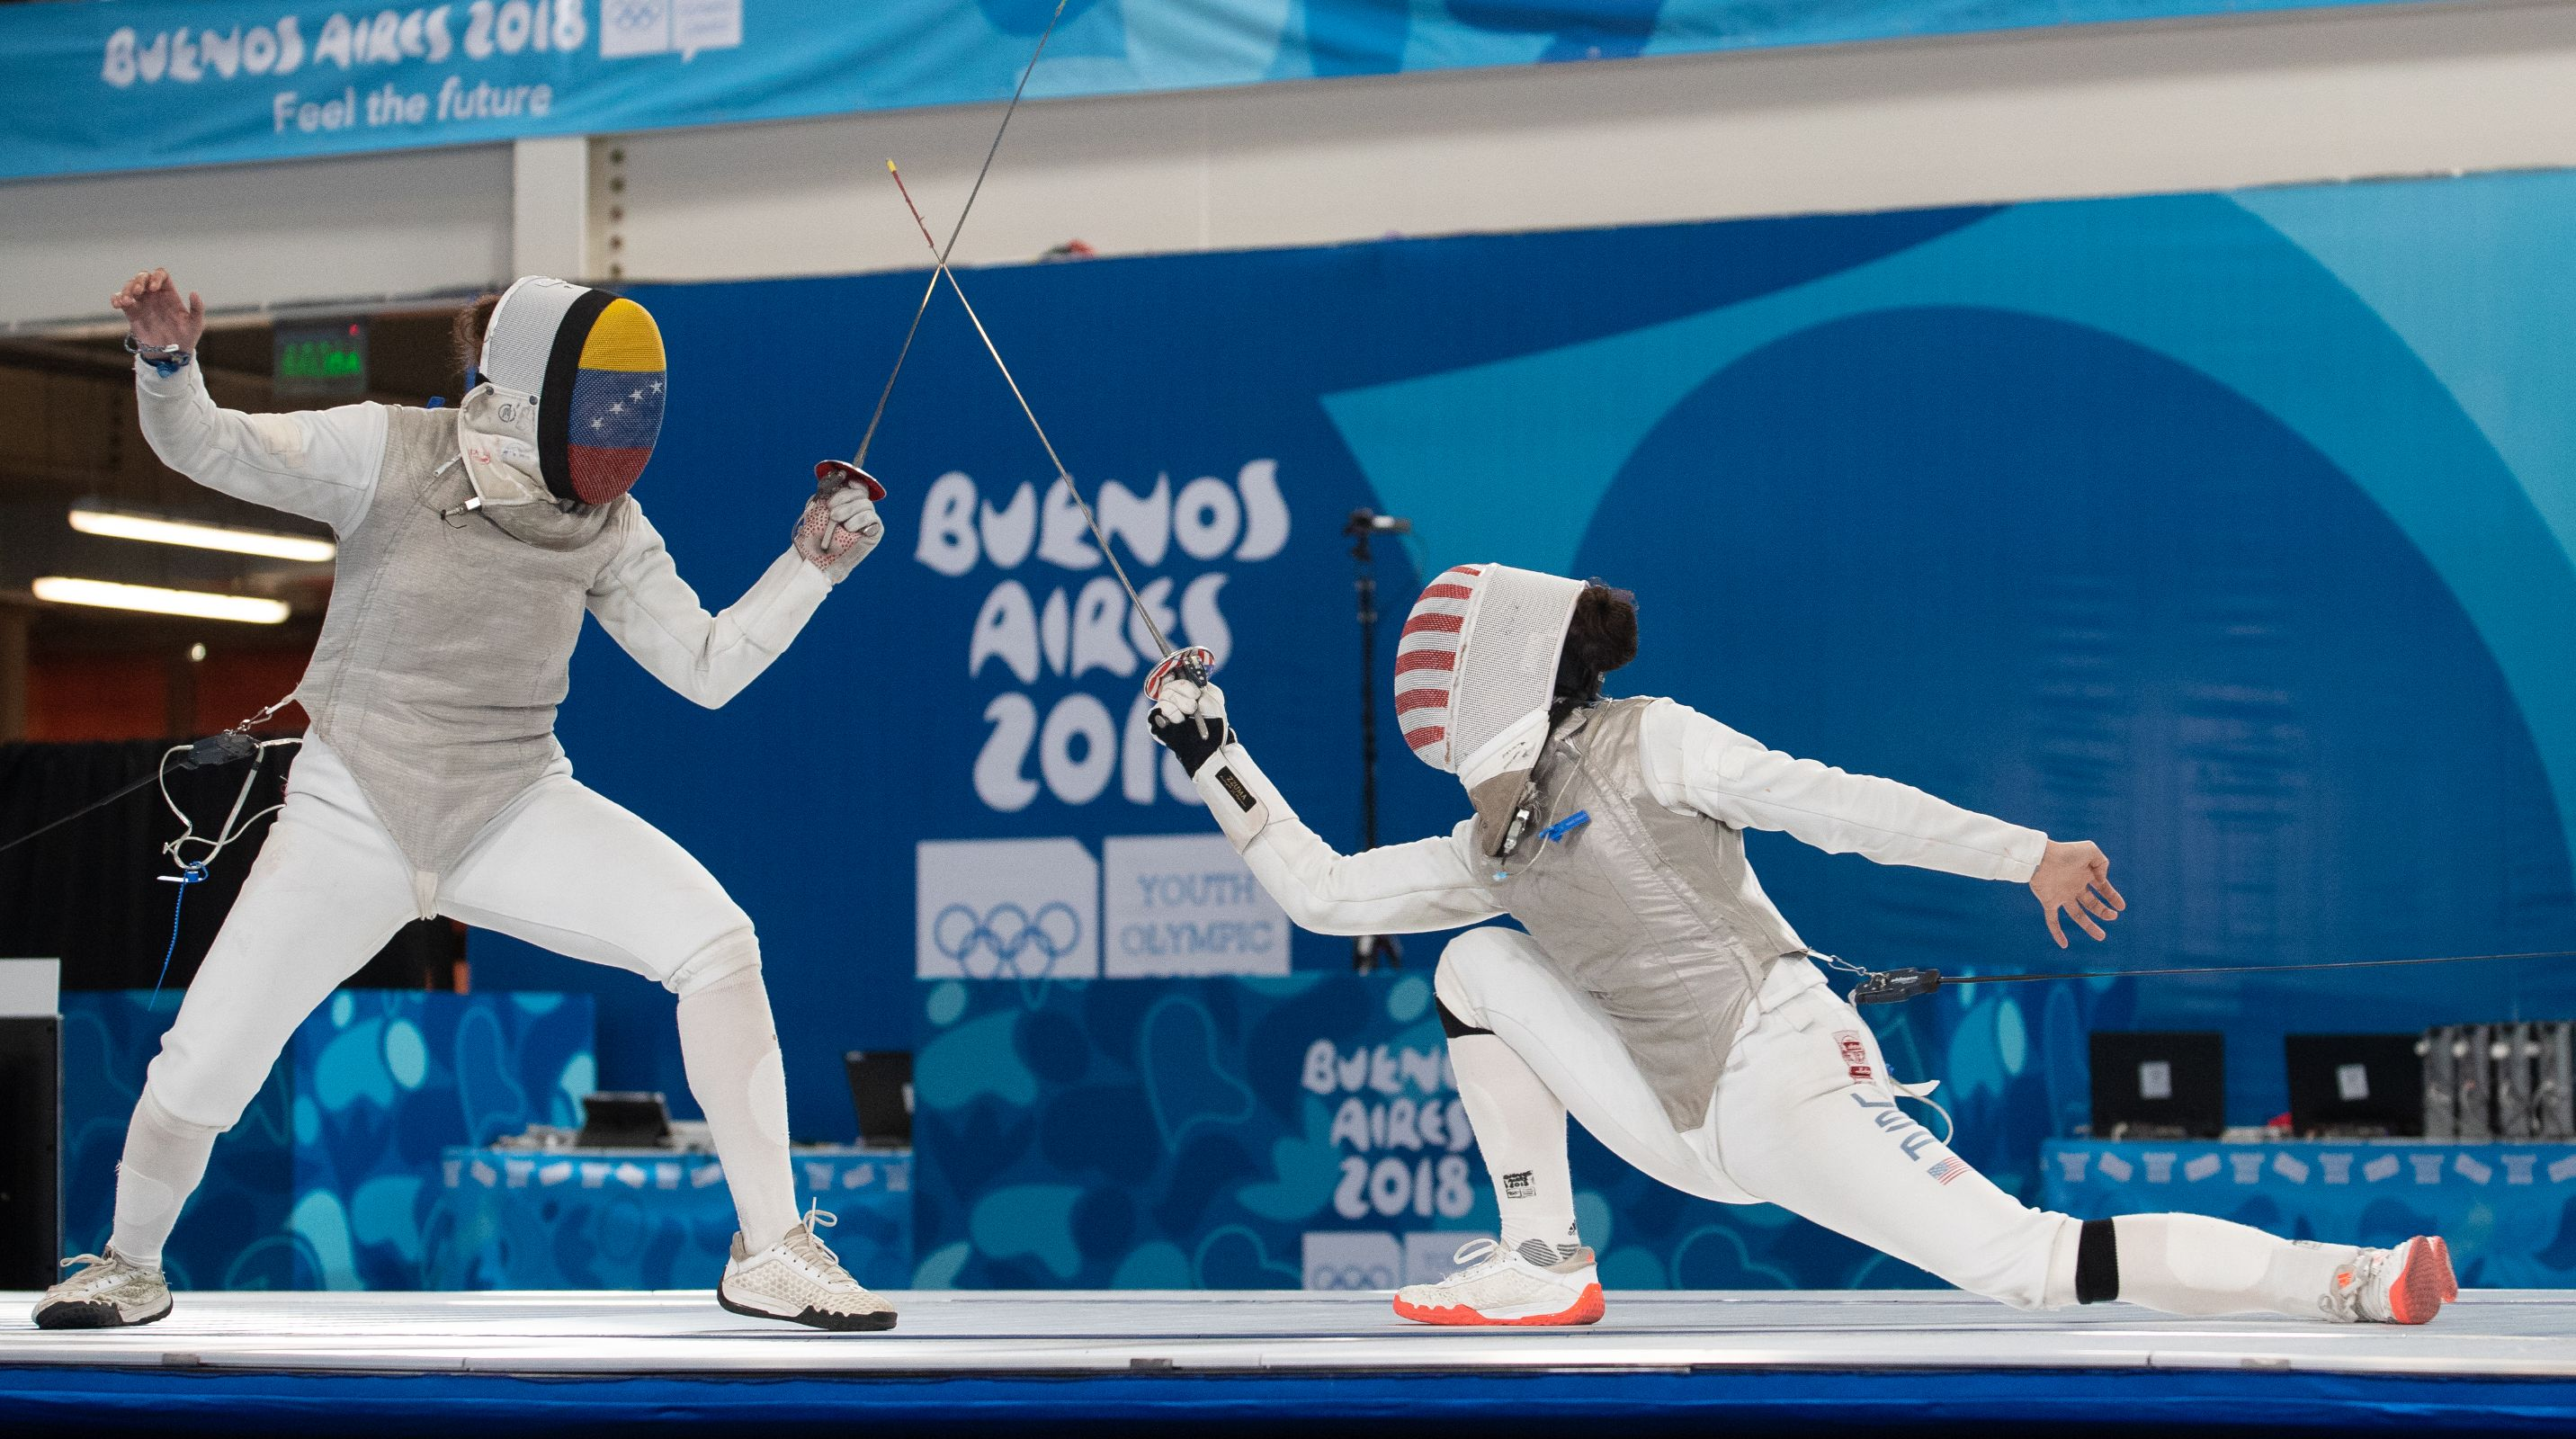 Fencing - Women's Foil Individual